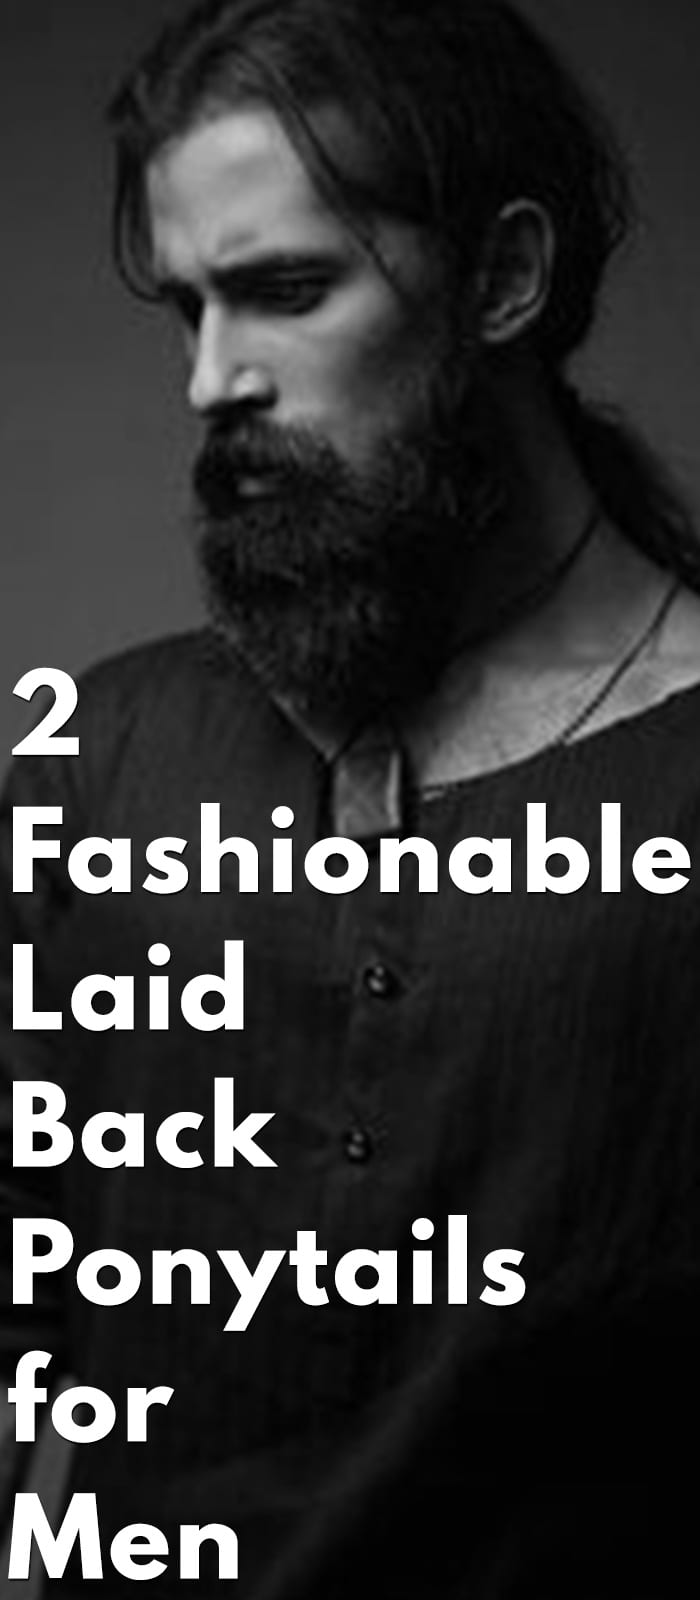 Fashionable Laid Back Ponytails